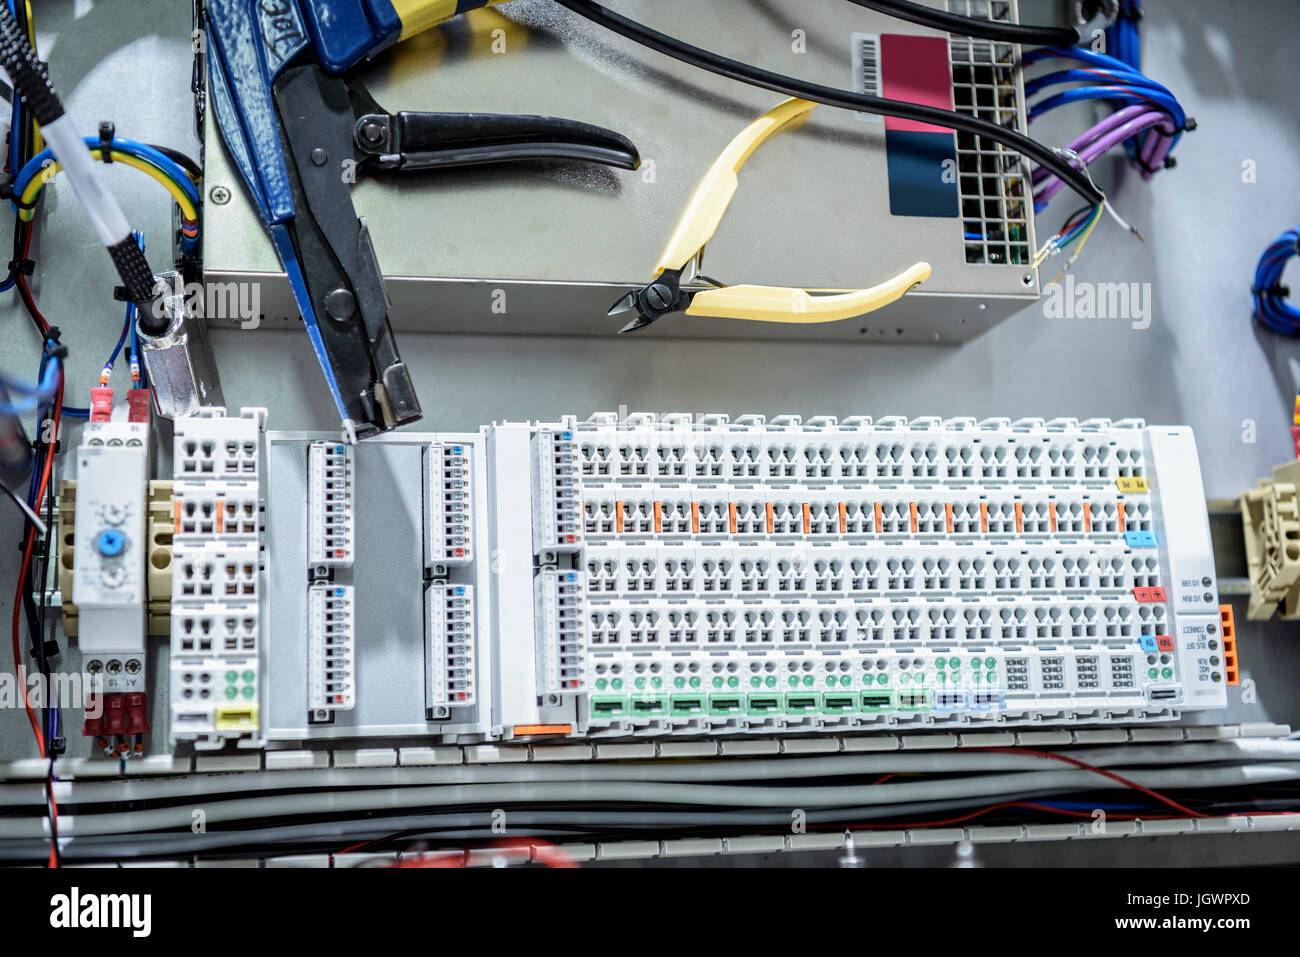 Electronics detail in cable finishing factory - Stock Image